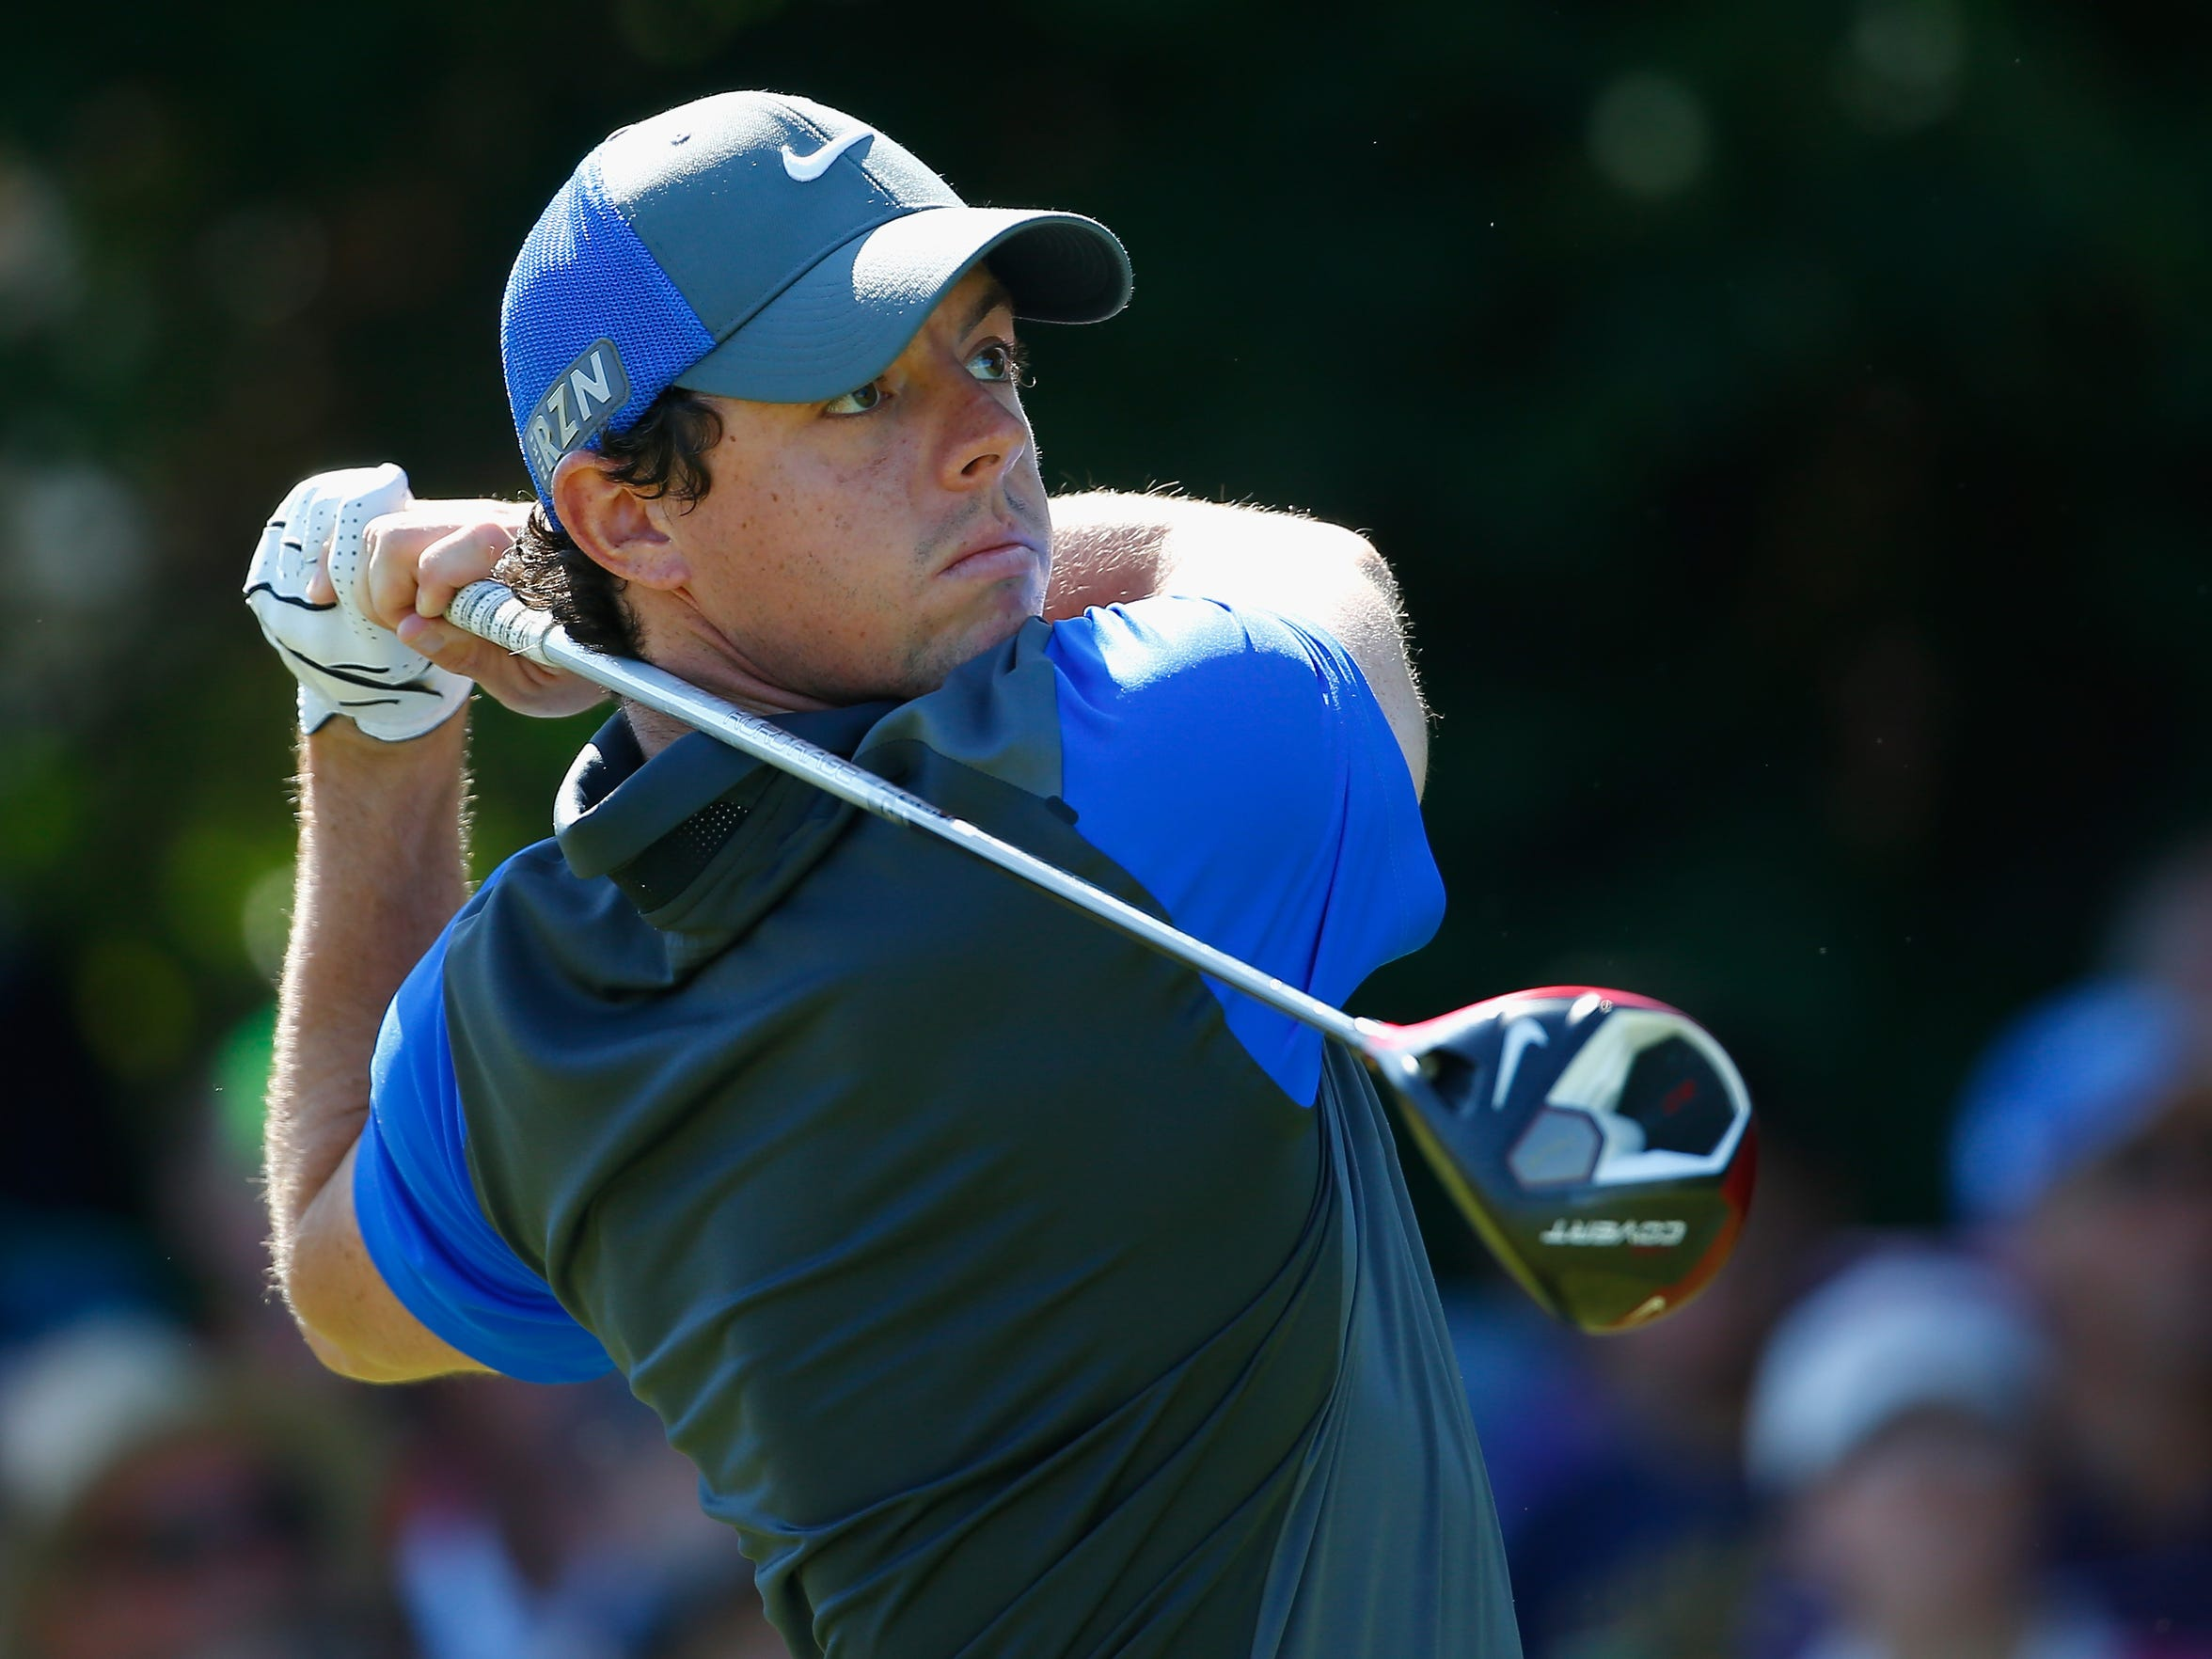 Rory McIlroy and many of the world's best golfers will